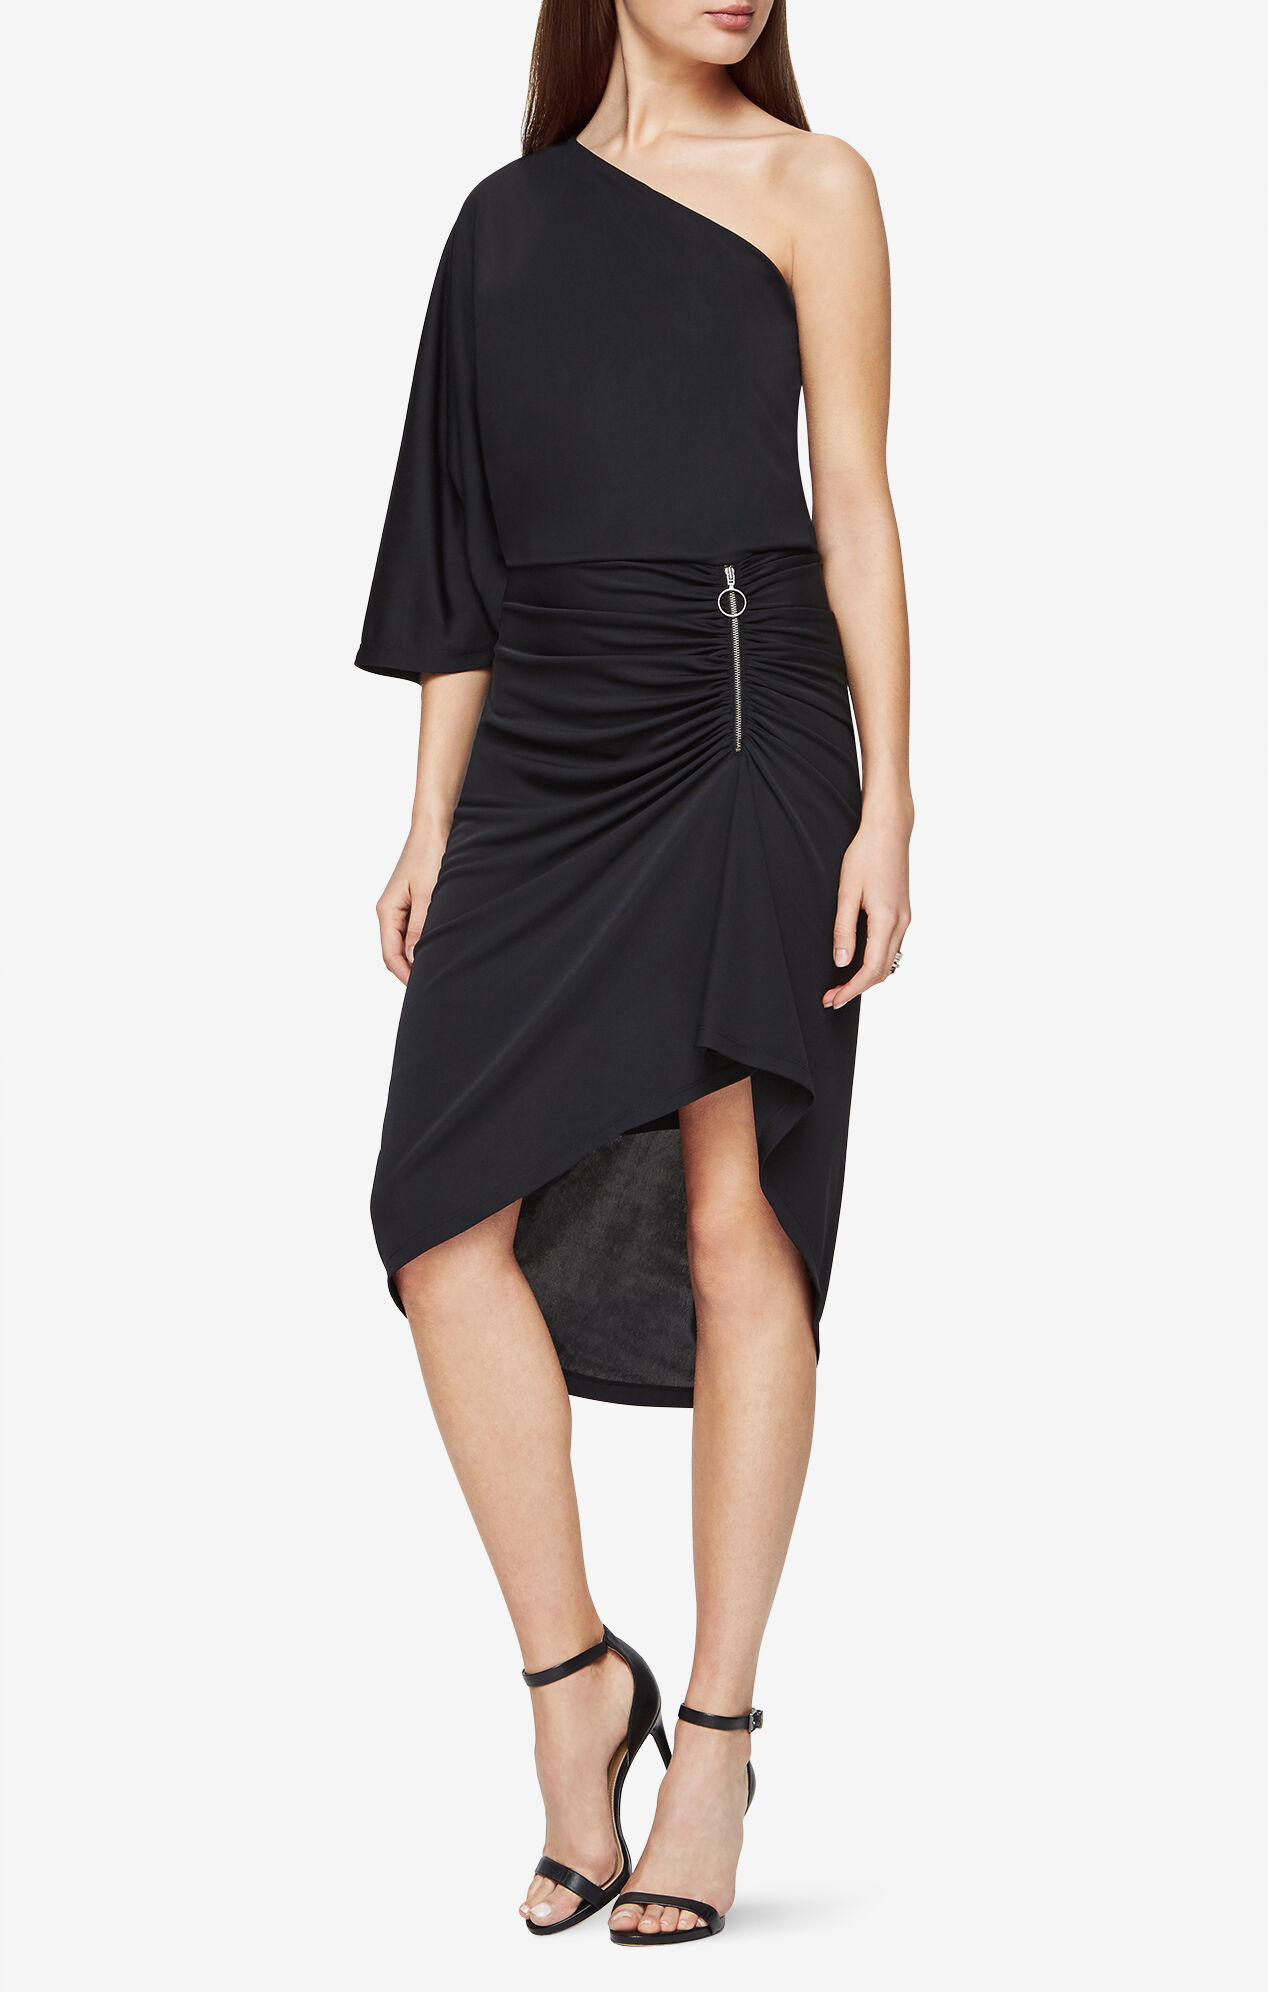 Malena One-Shoulder Dress